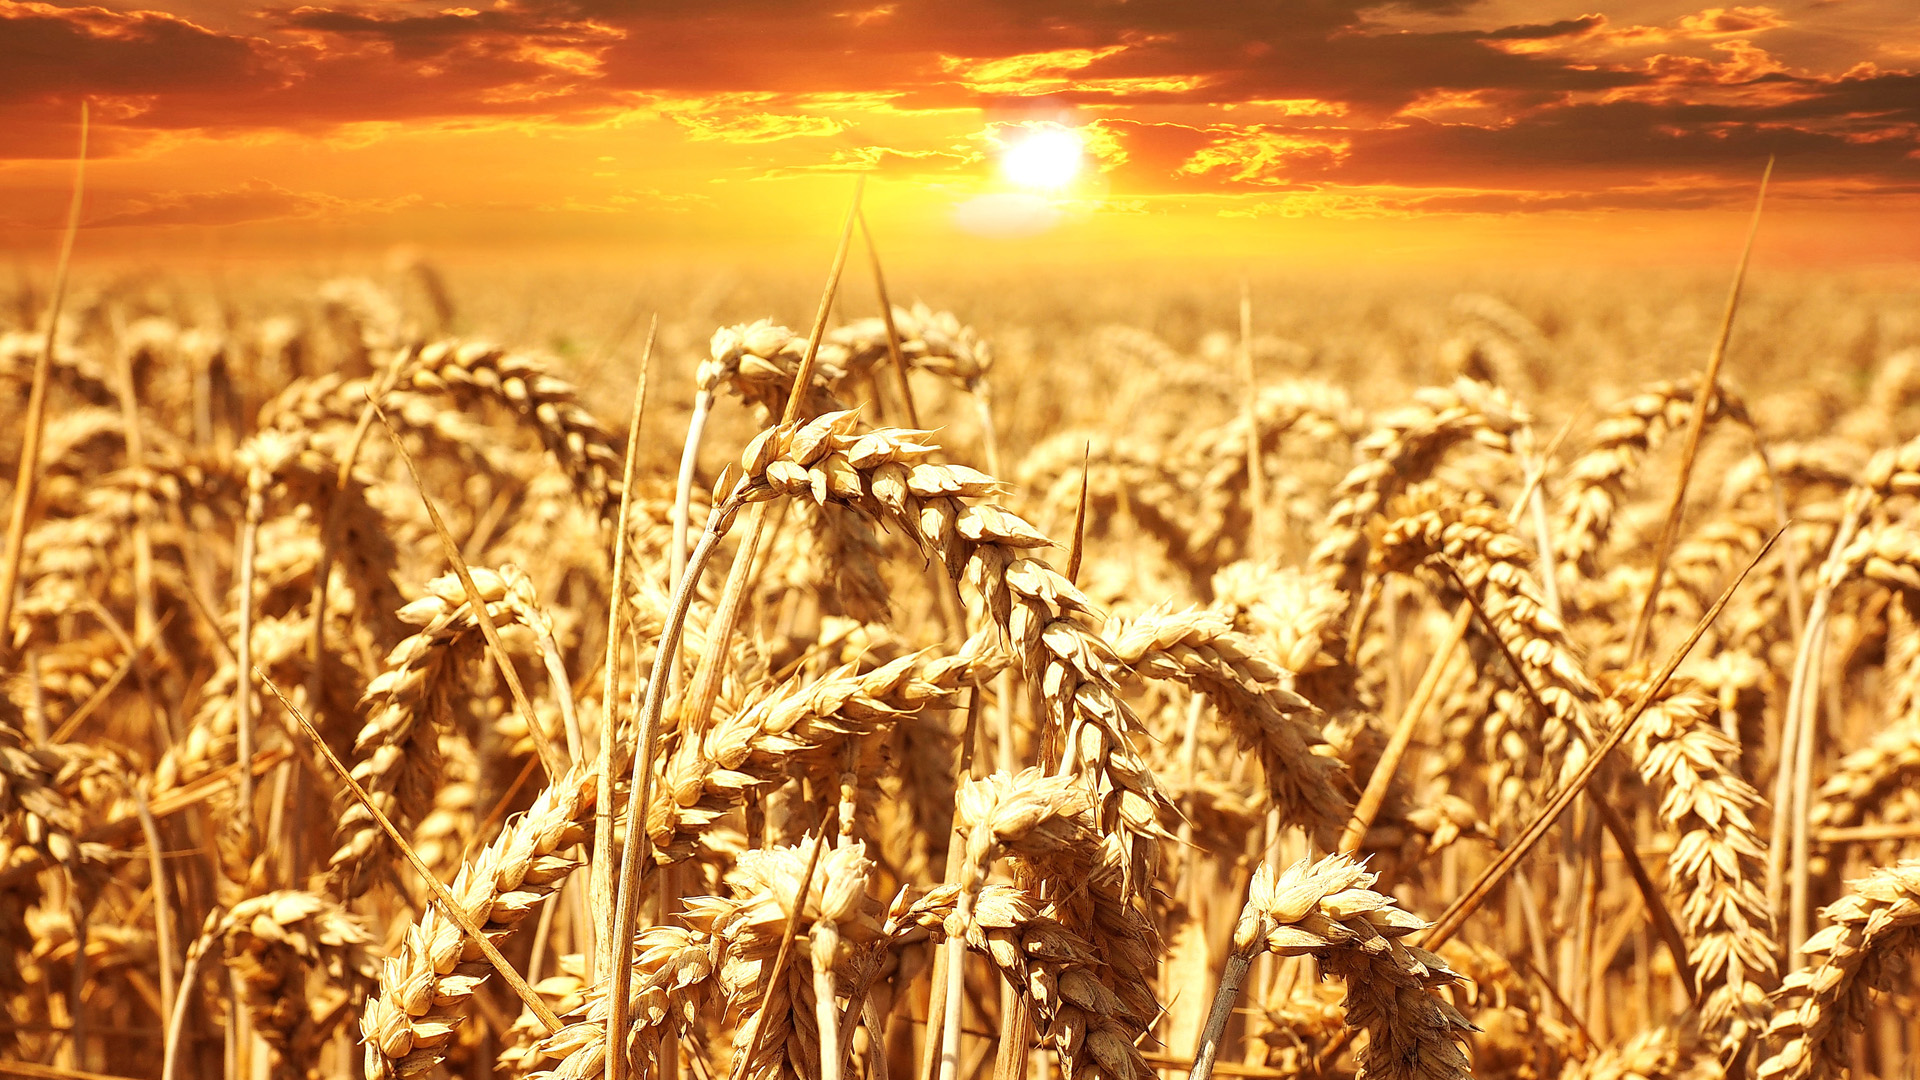 Policy Progress: The Chamber Signed the Memorandum of Understanding on the Grain Market with the Ministry for Development of Economy, Trade and Agriculture